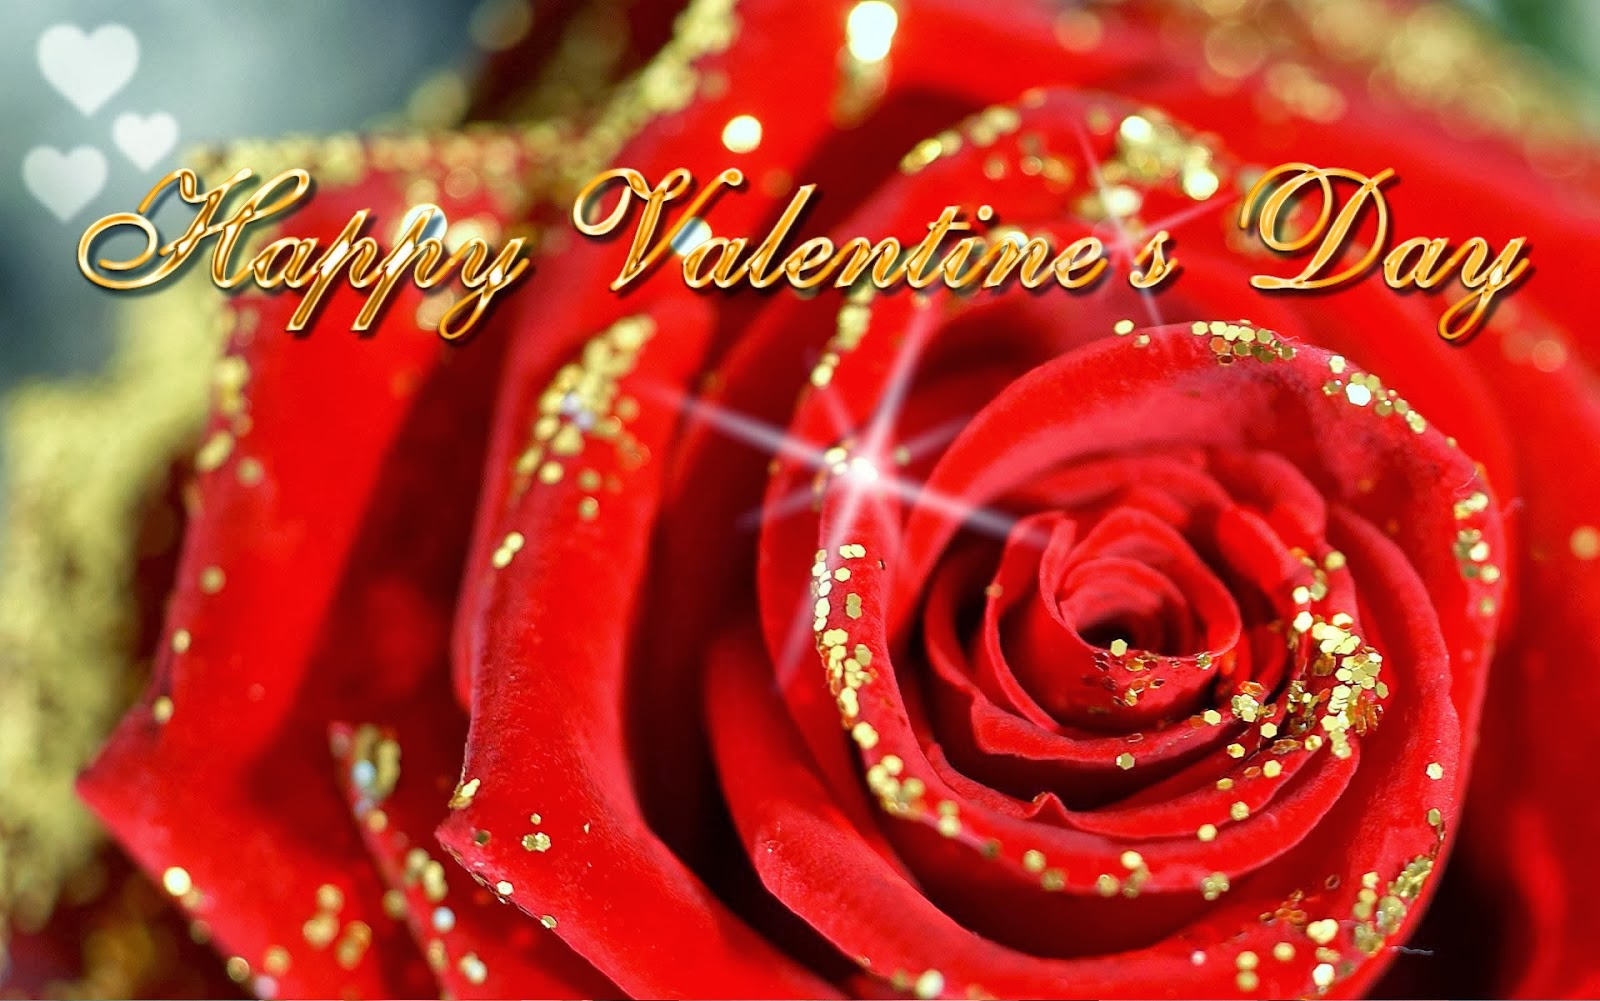 Valentineu0027s Day Live Wallpaper. Valentineu0027s Day Live Wallpaper Provides You  With An Amazing Collection Of Wallpaper Hd Including The Most Romantic  Pictures ...